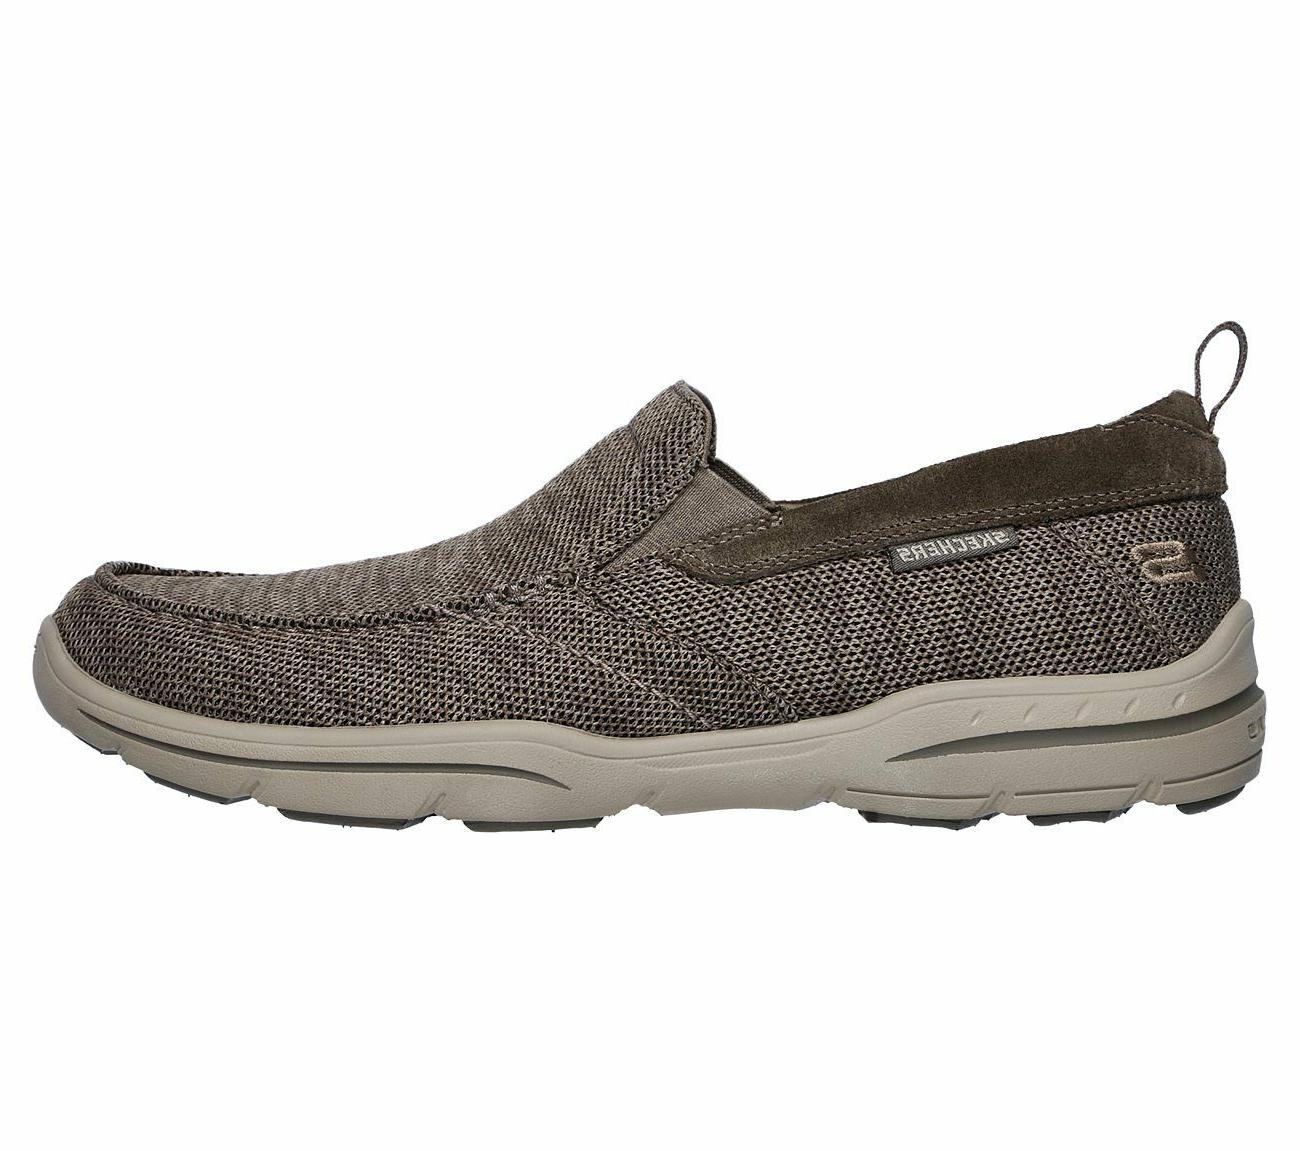 65626 Skechers Men Foam Casual Comfort Woven